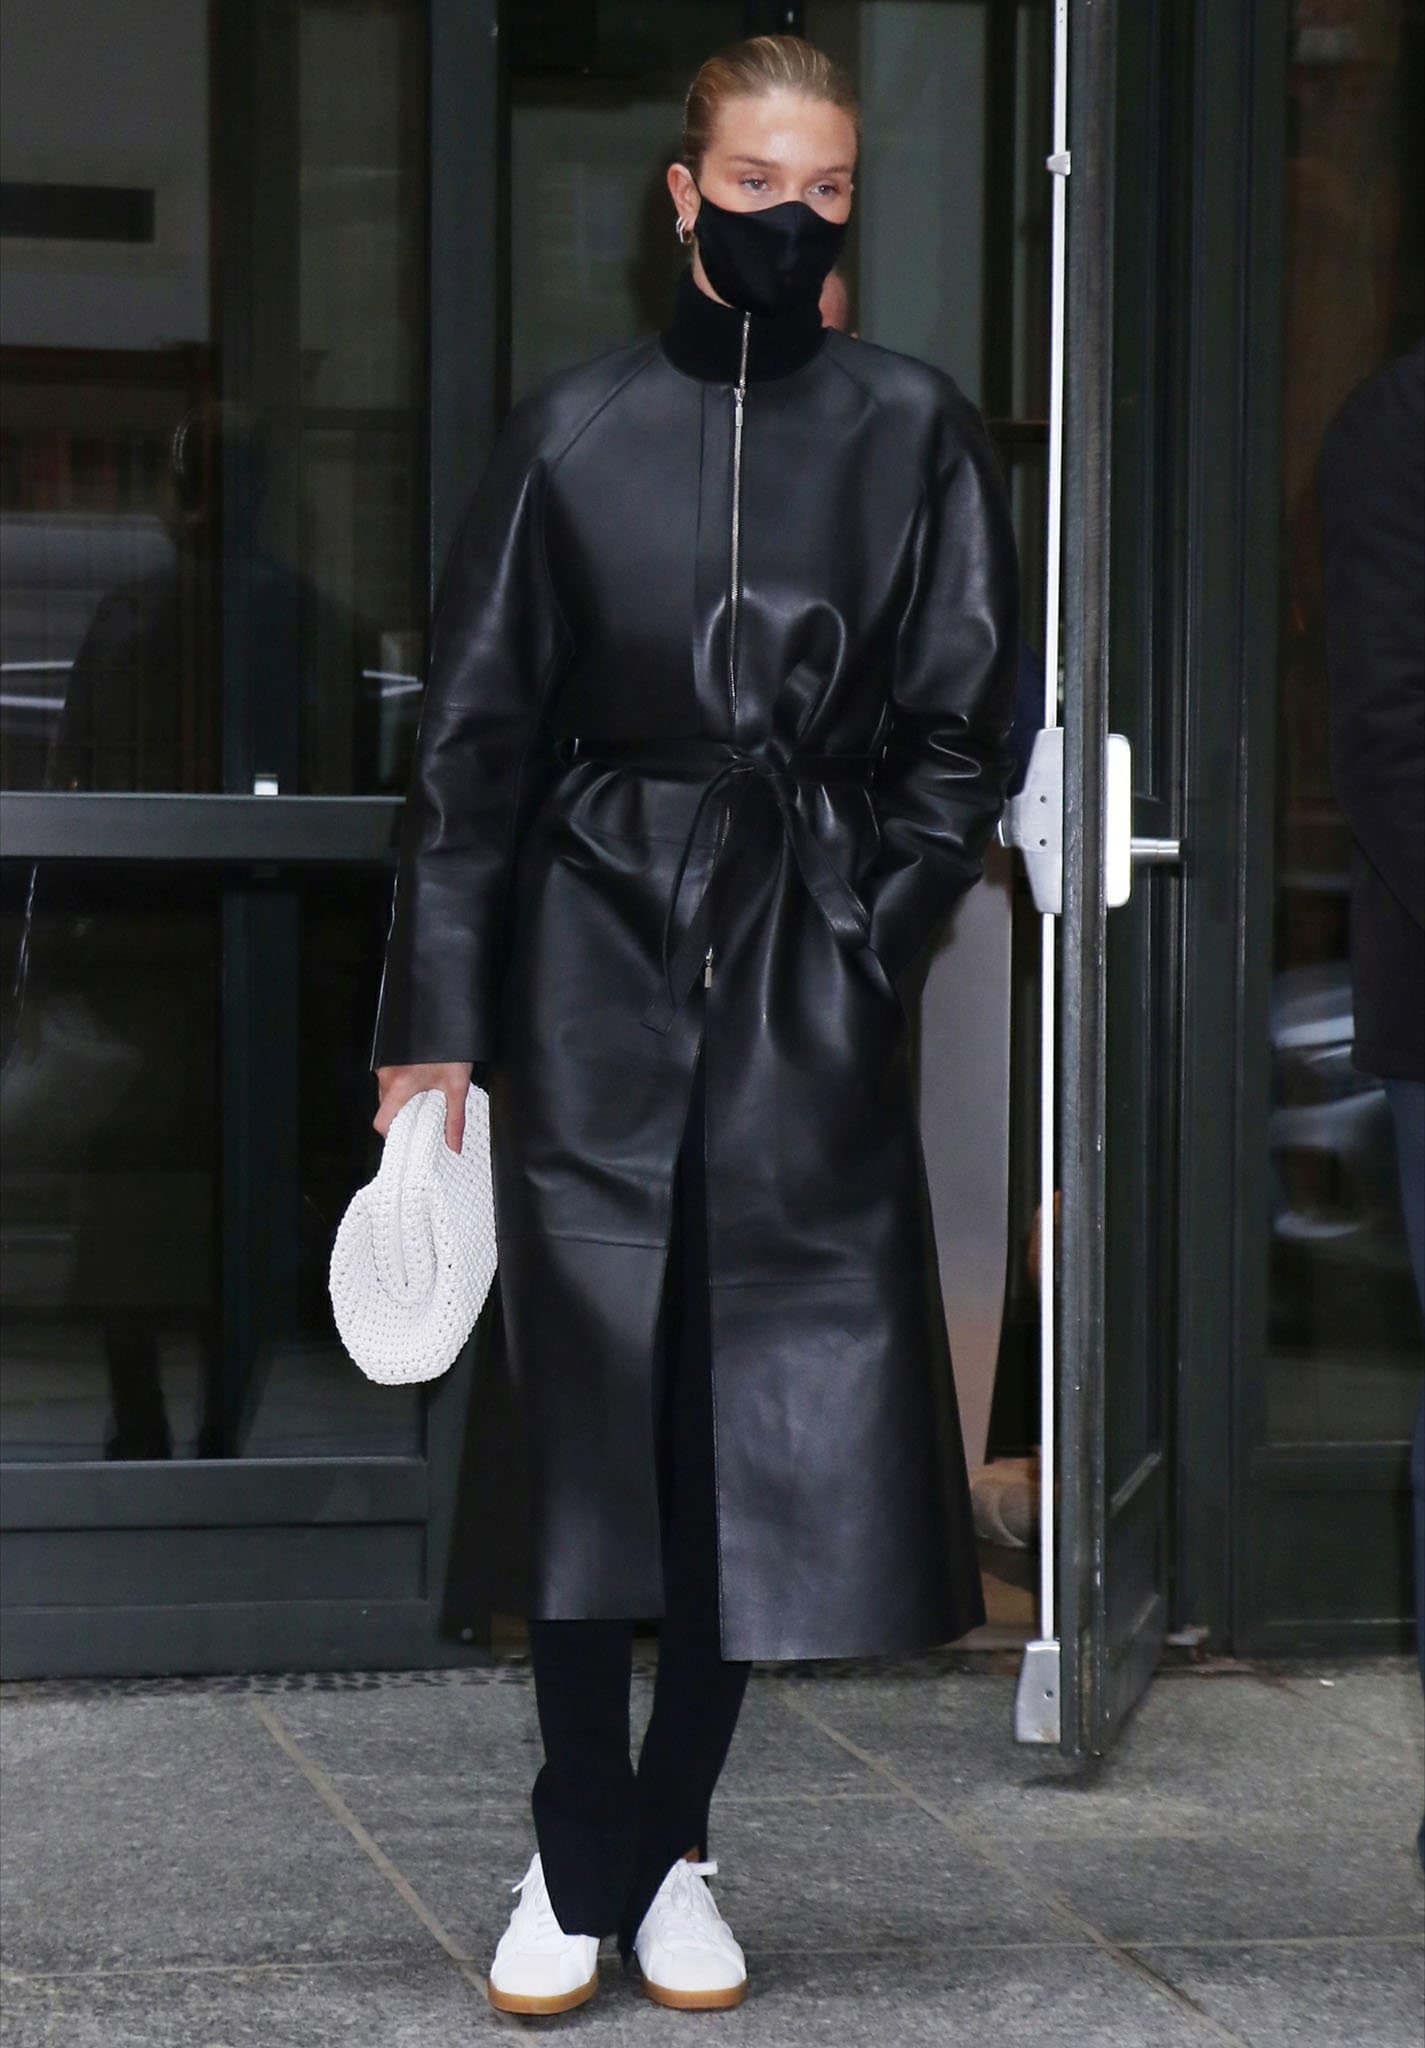 Rosie Huntington-Whiteley in Toteme trench coat, merino wool sweater, and high-rise leggings